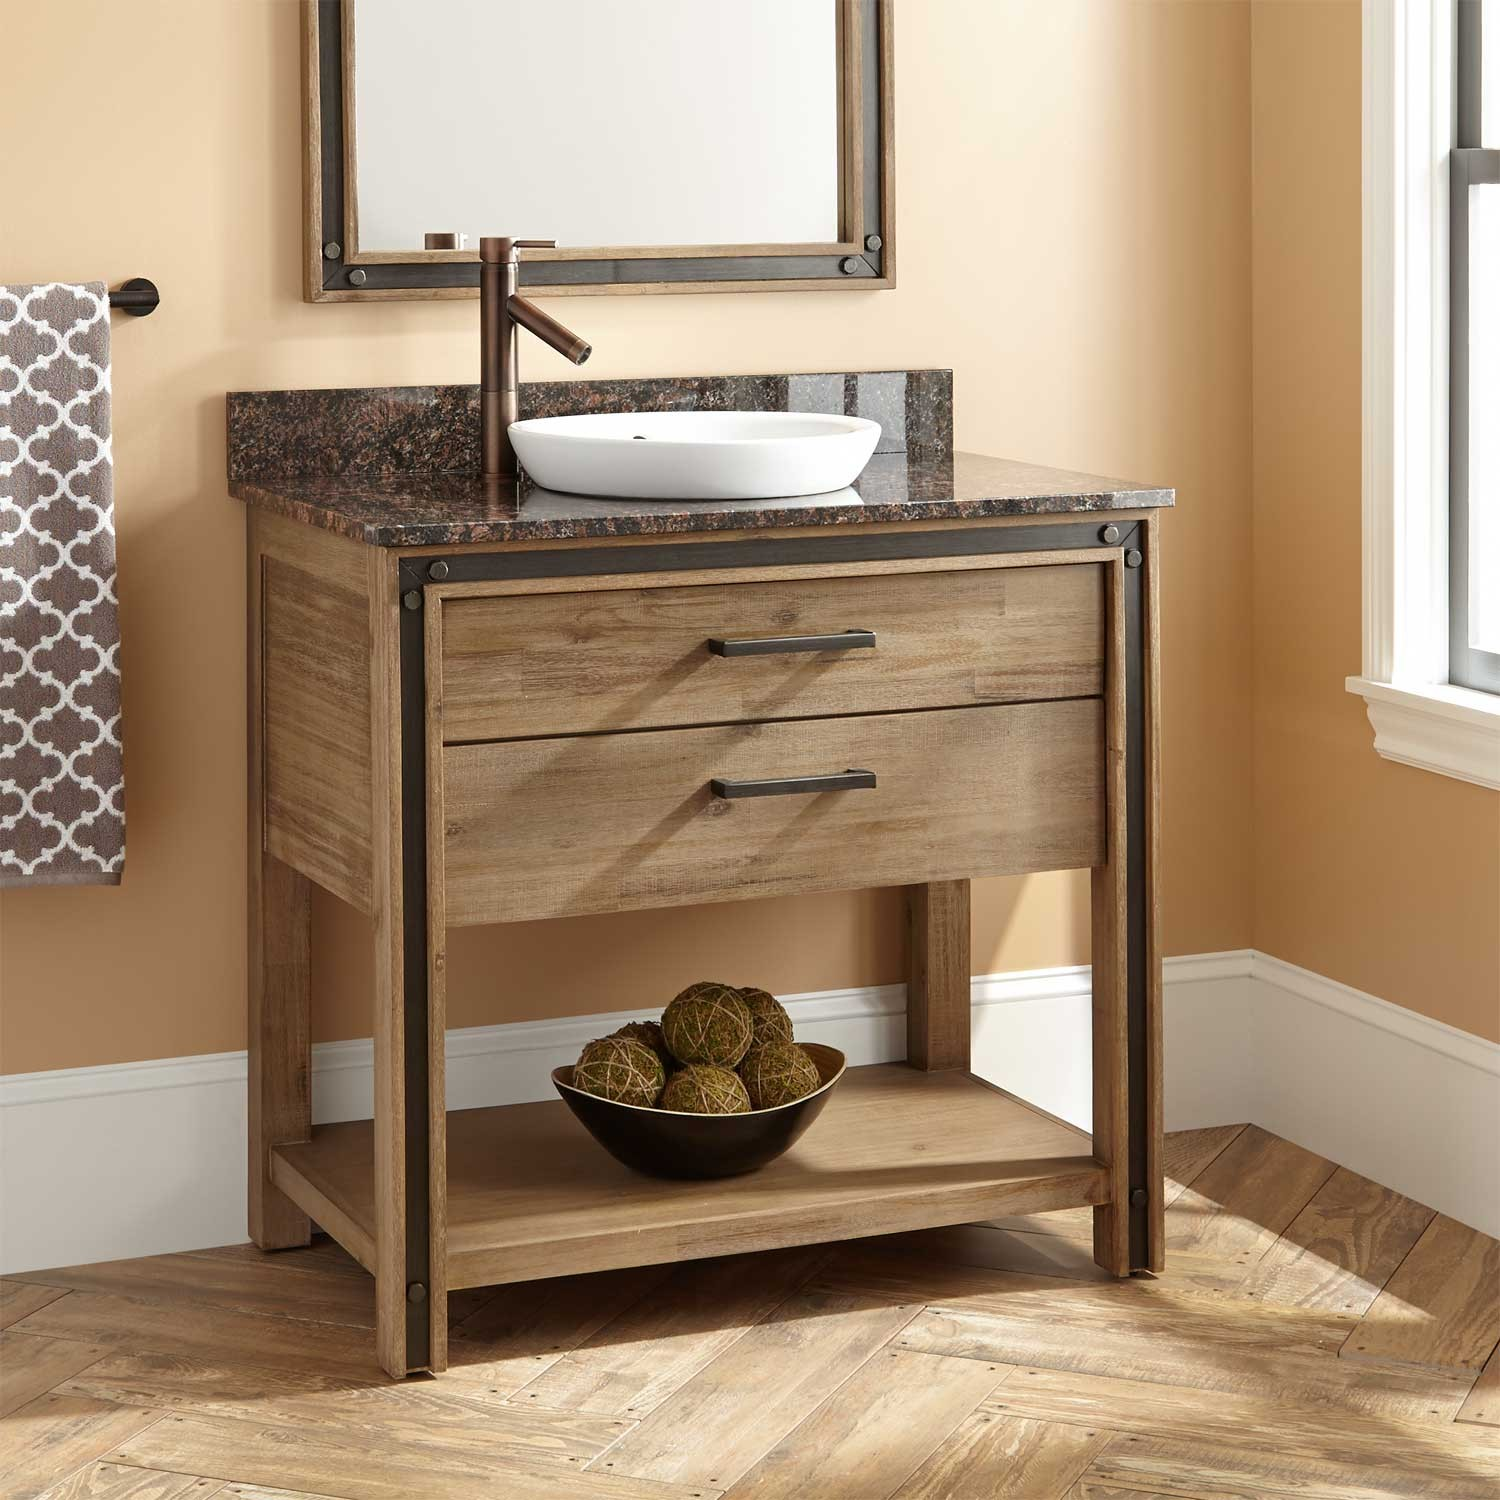 Image of: Ikea Double Vanity Shelf